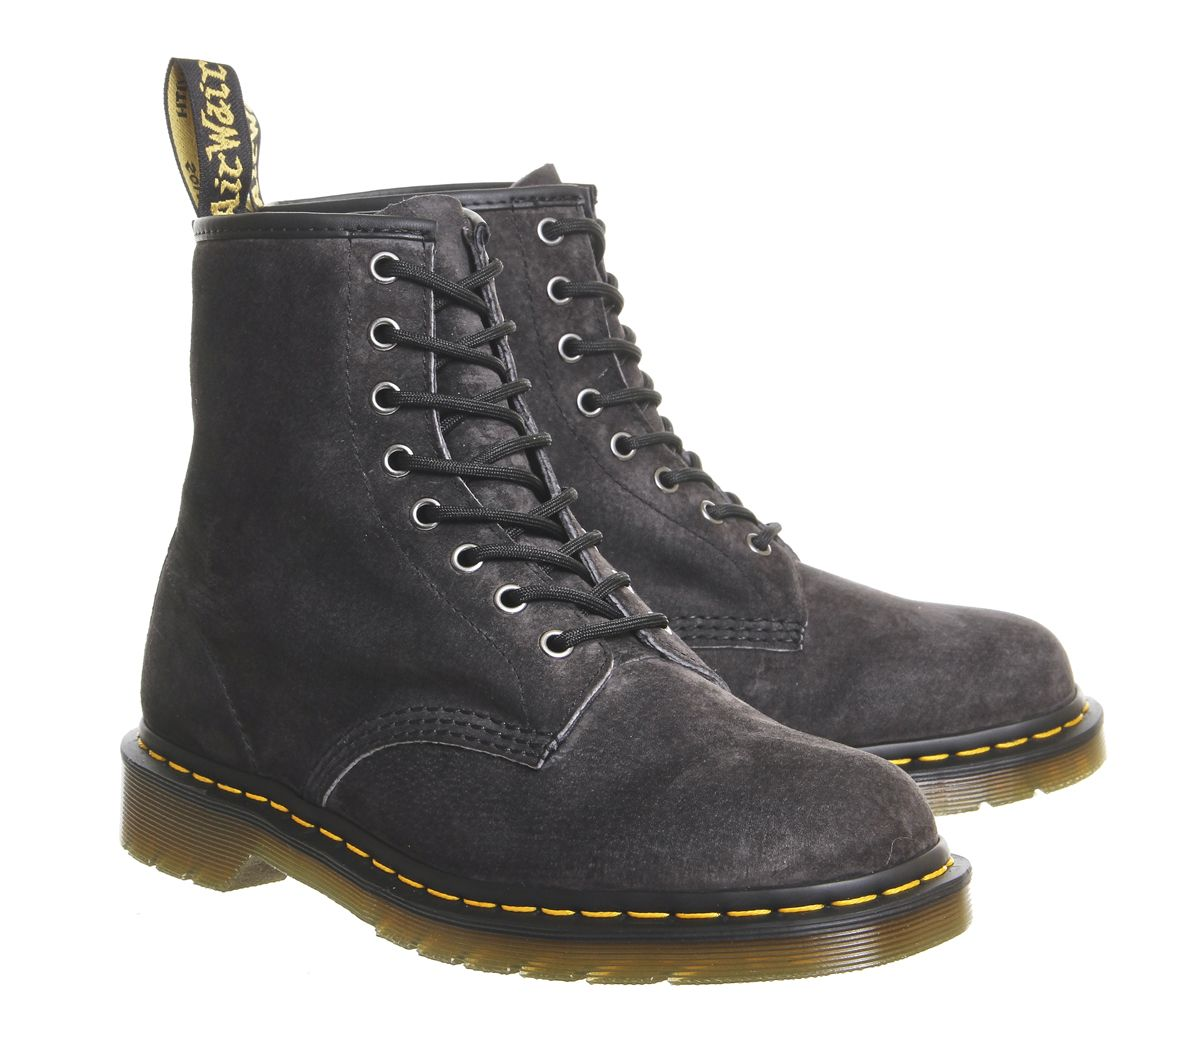 560210cc794 Sentinel Mens Dr. Martens 8 Eye Lace Boots Graphite Grey Soft Buck Boots